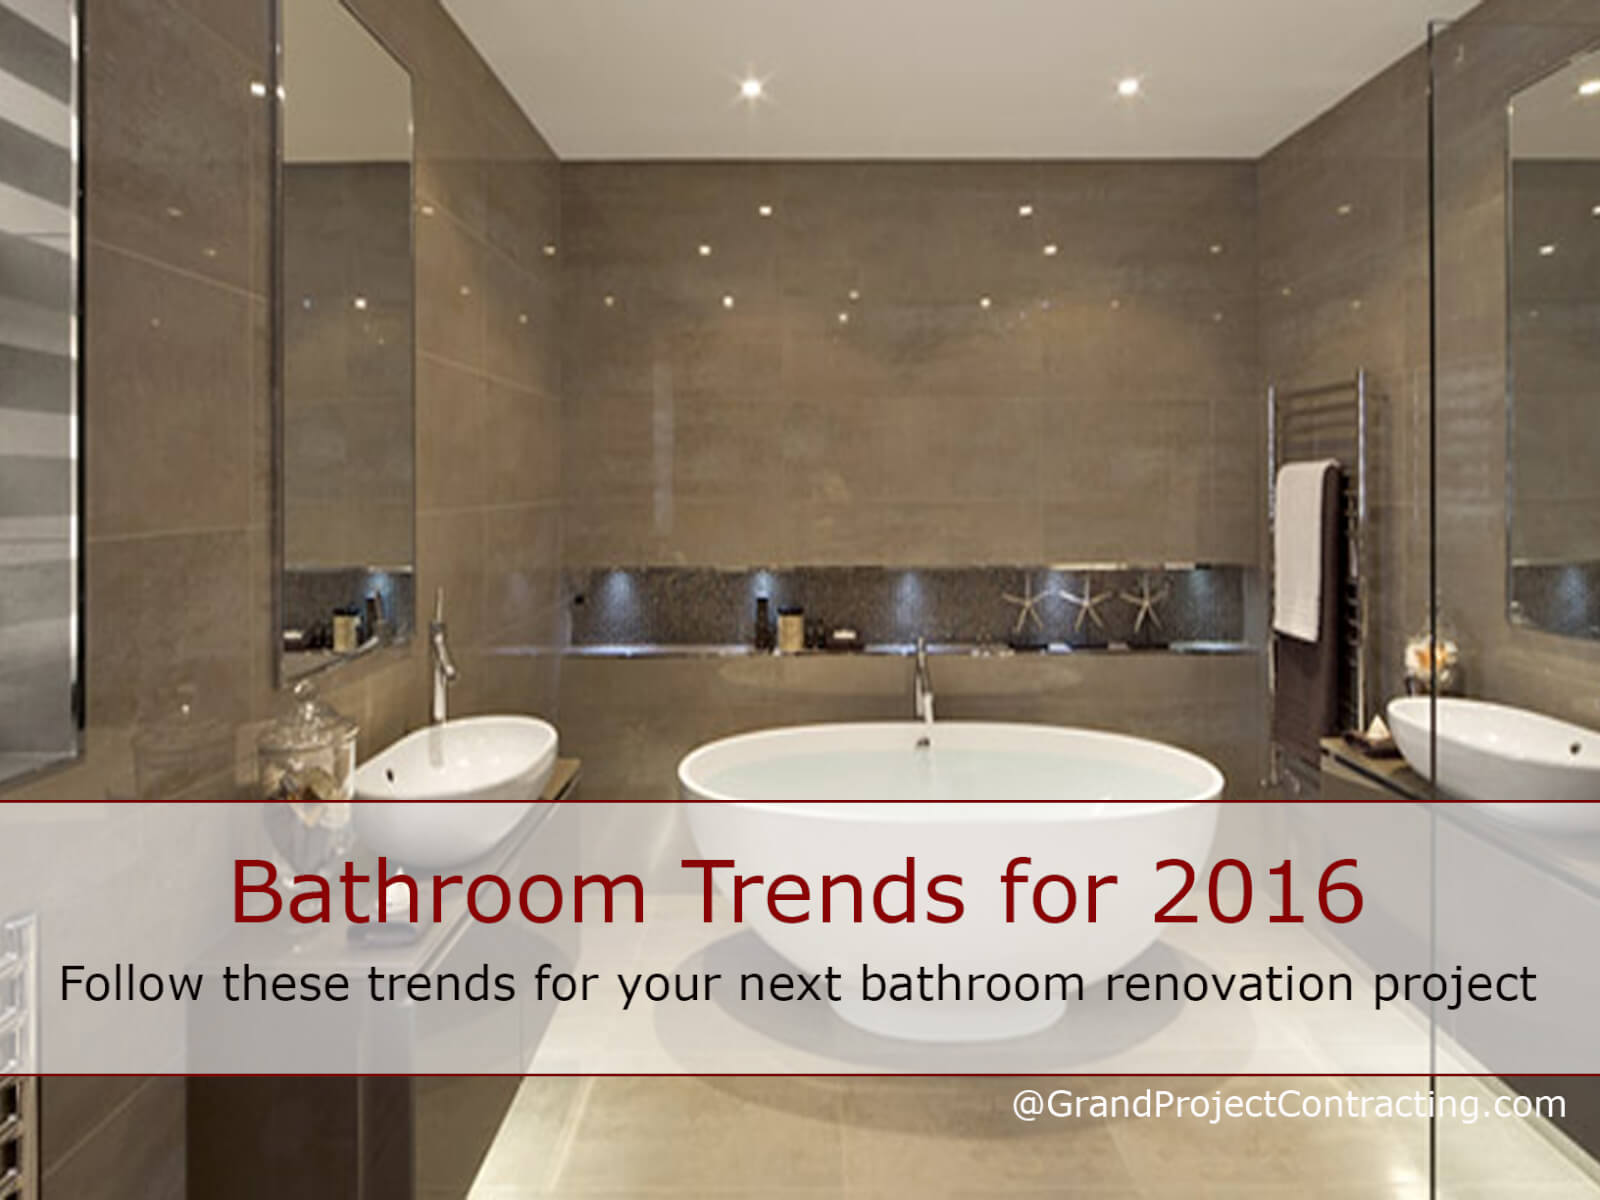 Bathroom trends for 2016 bathroom renovation contractor for New bathroom ideas for 2018